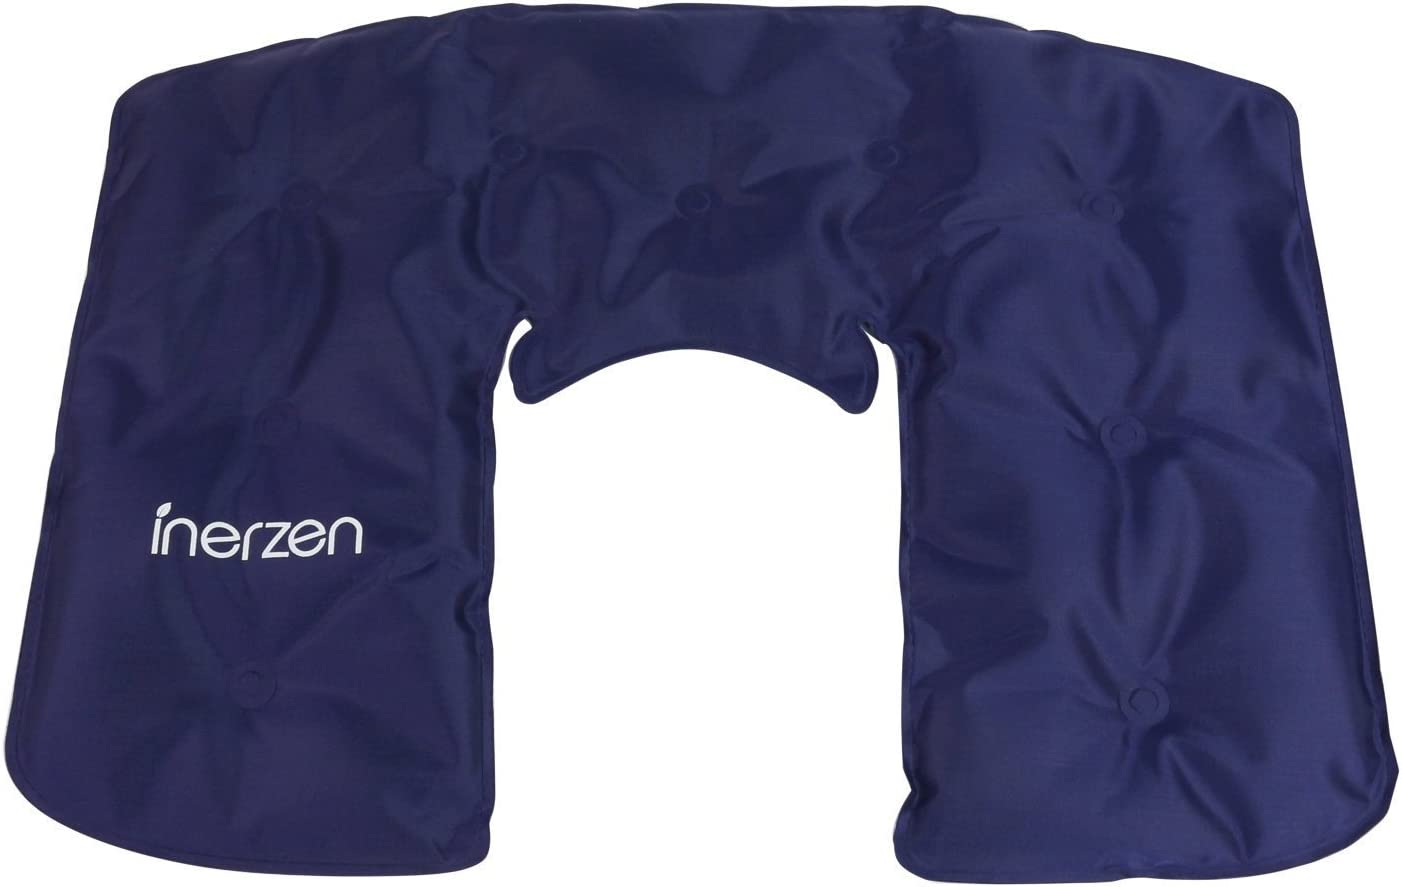 Inerzen Neck and Shoulder Hot and Cold Big Gel Pad Full Coverage Therapy Wrap for Pain, Muscle, Stress Relief - Microwavable and Freezable: Health & Personal Care